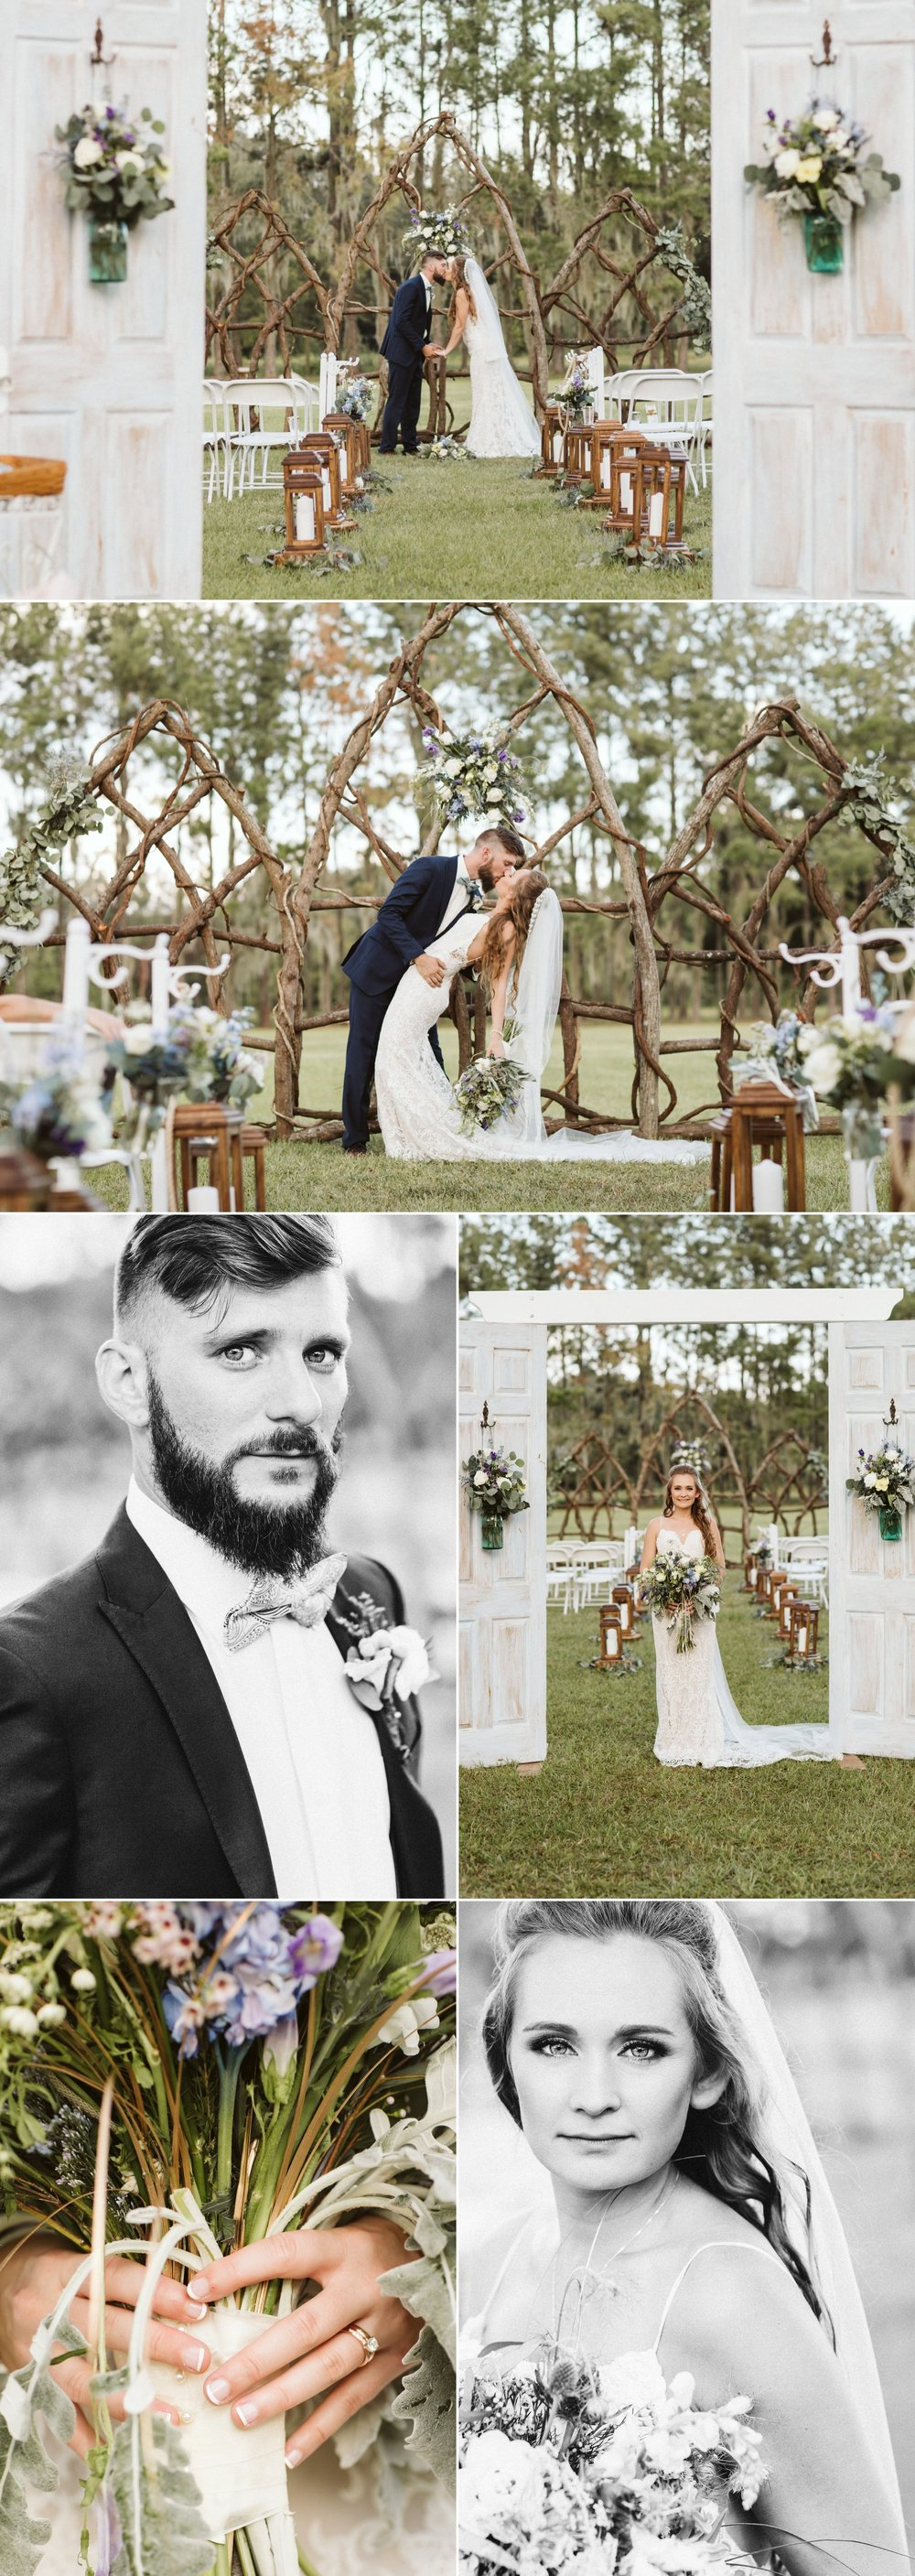 Romantic Floral Outdoor Field Chapel Wedding- Sarasota Florida- Courtney & Isaac20.jpg